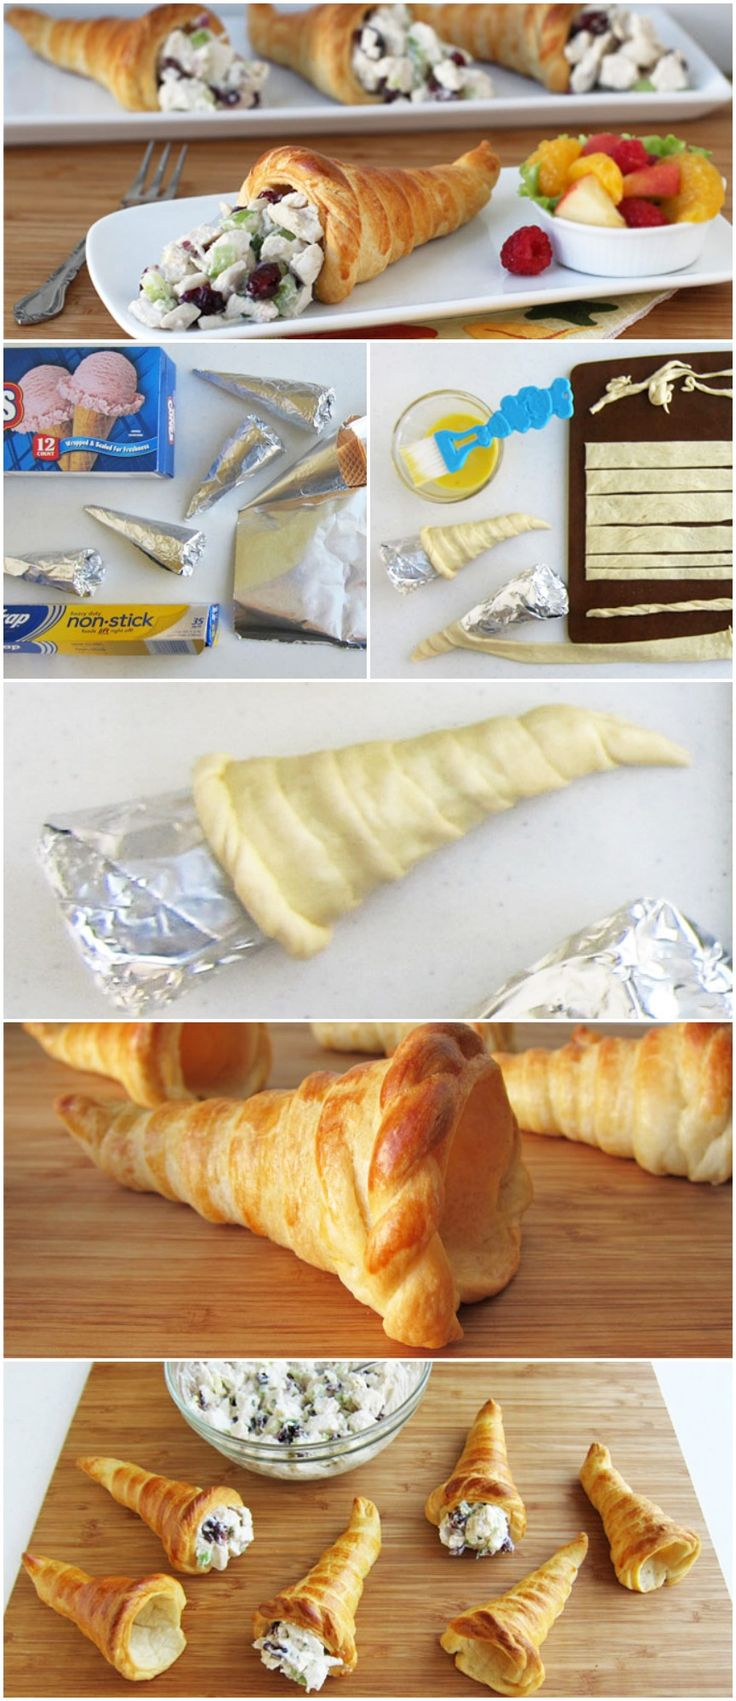 @Pillsbury Crescent Cornucopia #thanksgiving #pillsbury: Rolls Cornucopia, Metz Crescents, Crescent Rolls, Spinach Dip, Pillsbury Crescents Rolls, Crescents Cornucopia, Chicken Salad Recipes, Spinach Crescents Rolls, Crescents Rolls Ideas